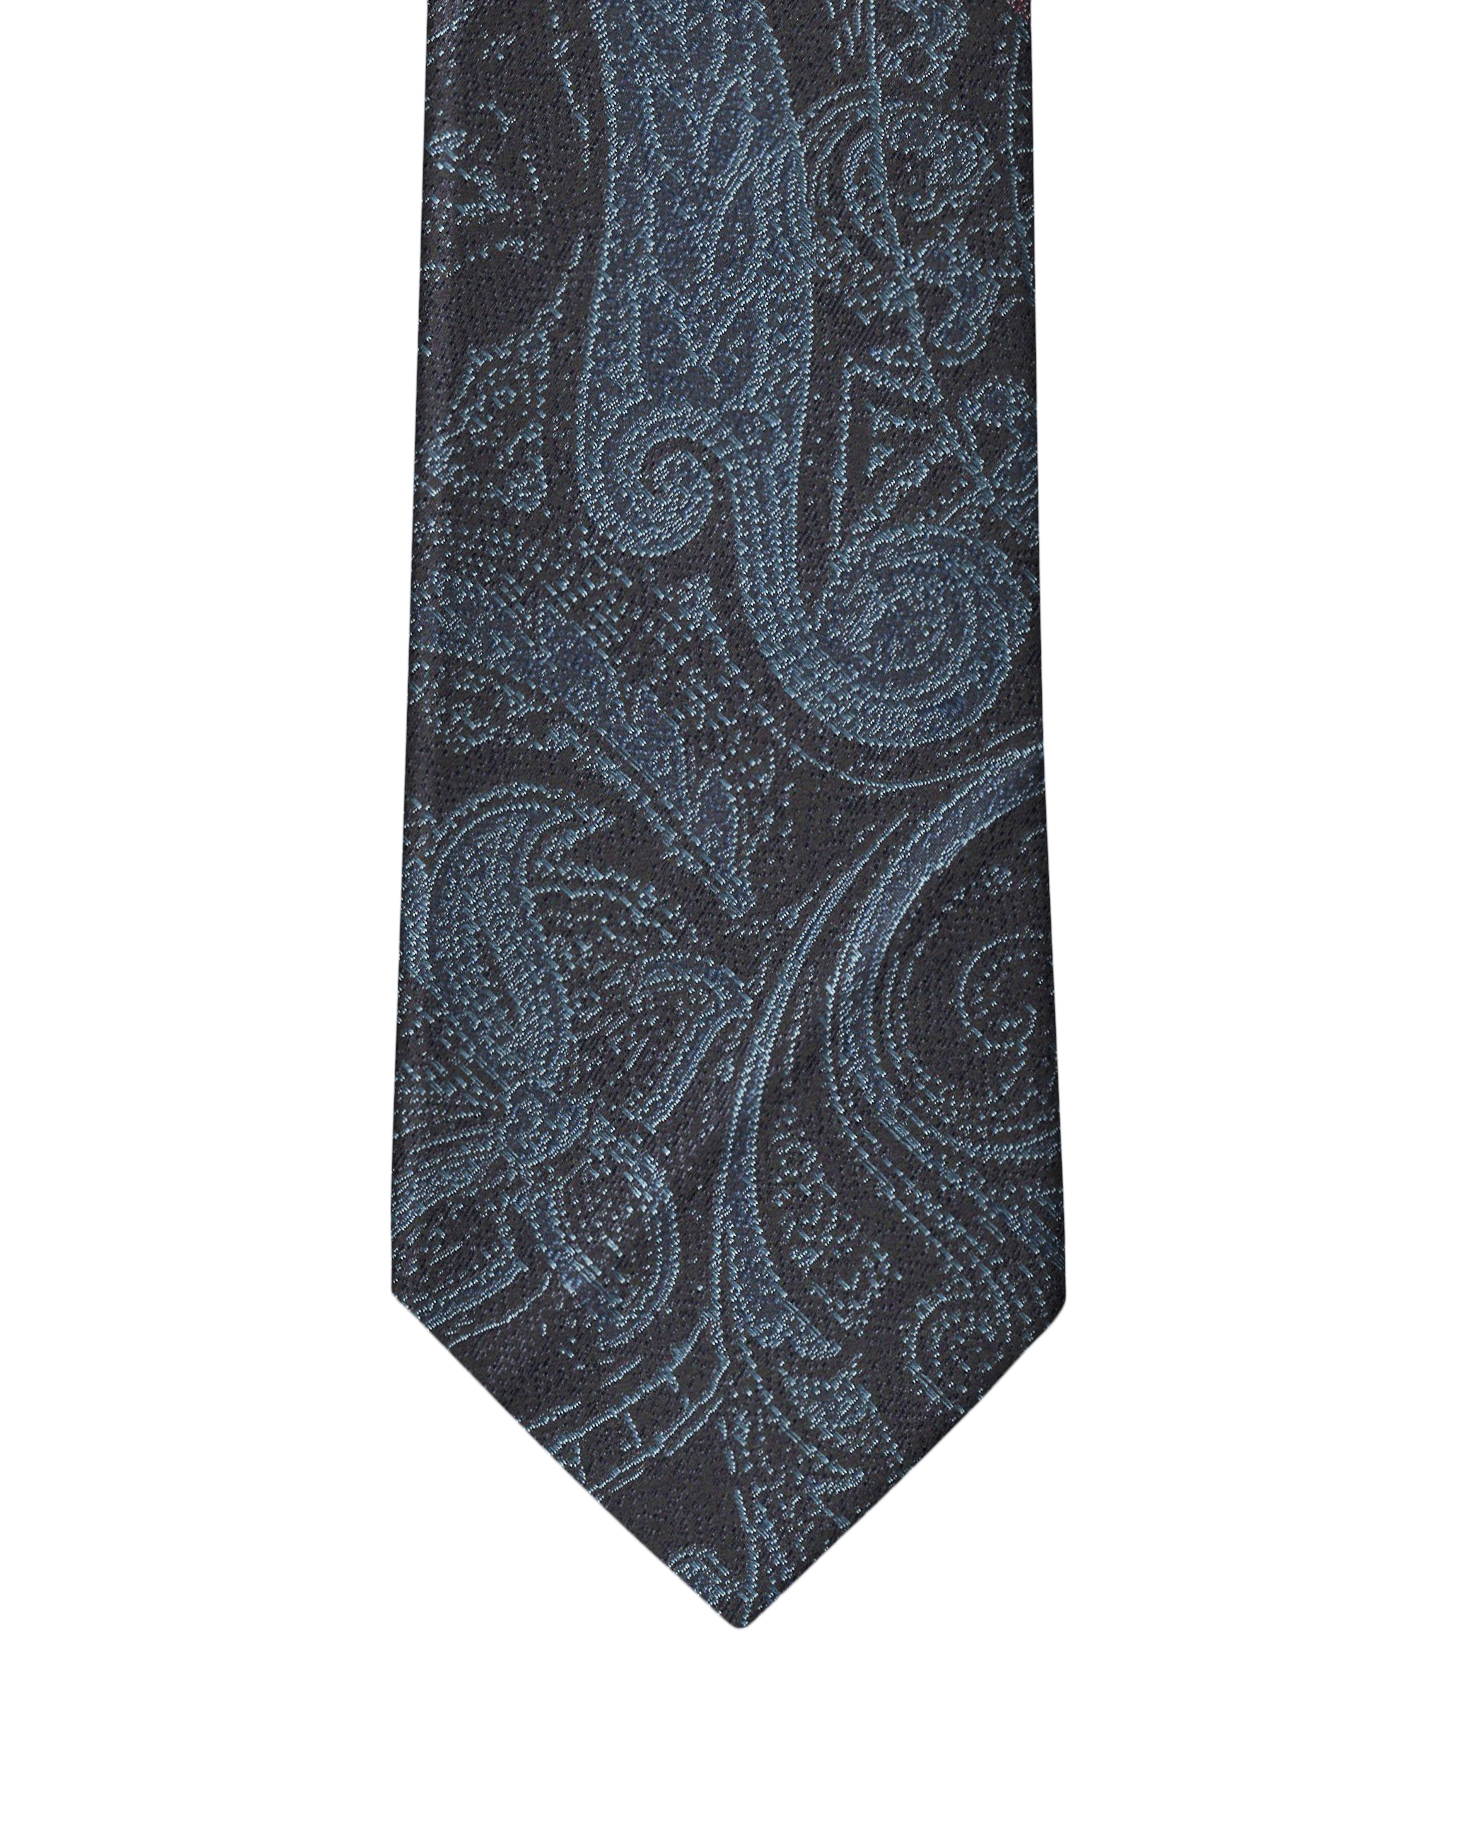 Navy & Blue Persian Paisley Necktie